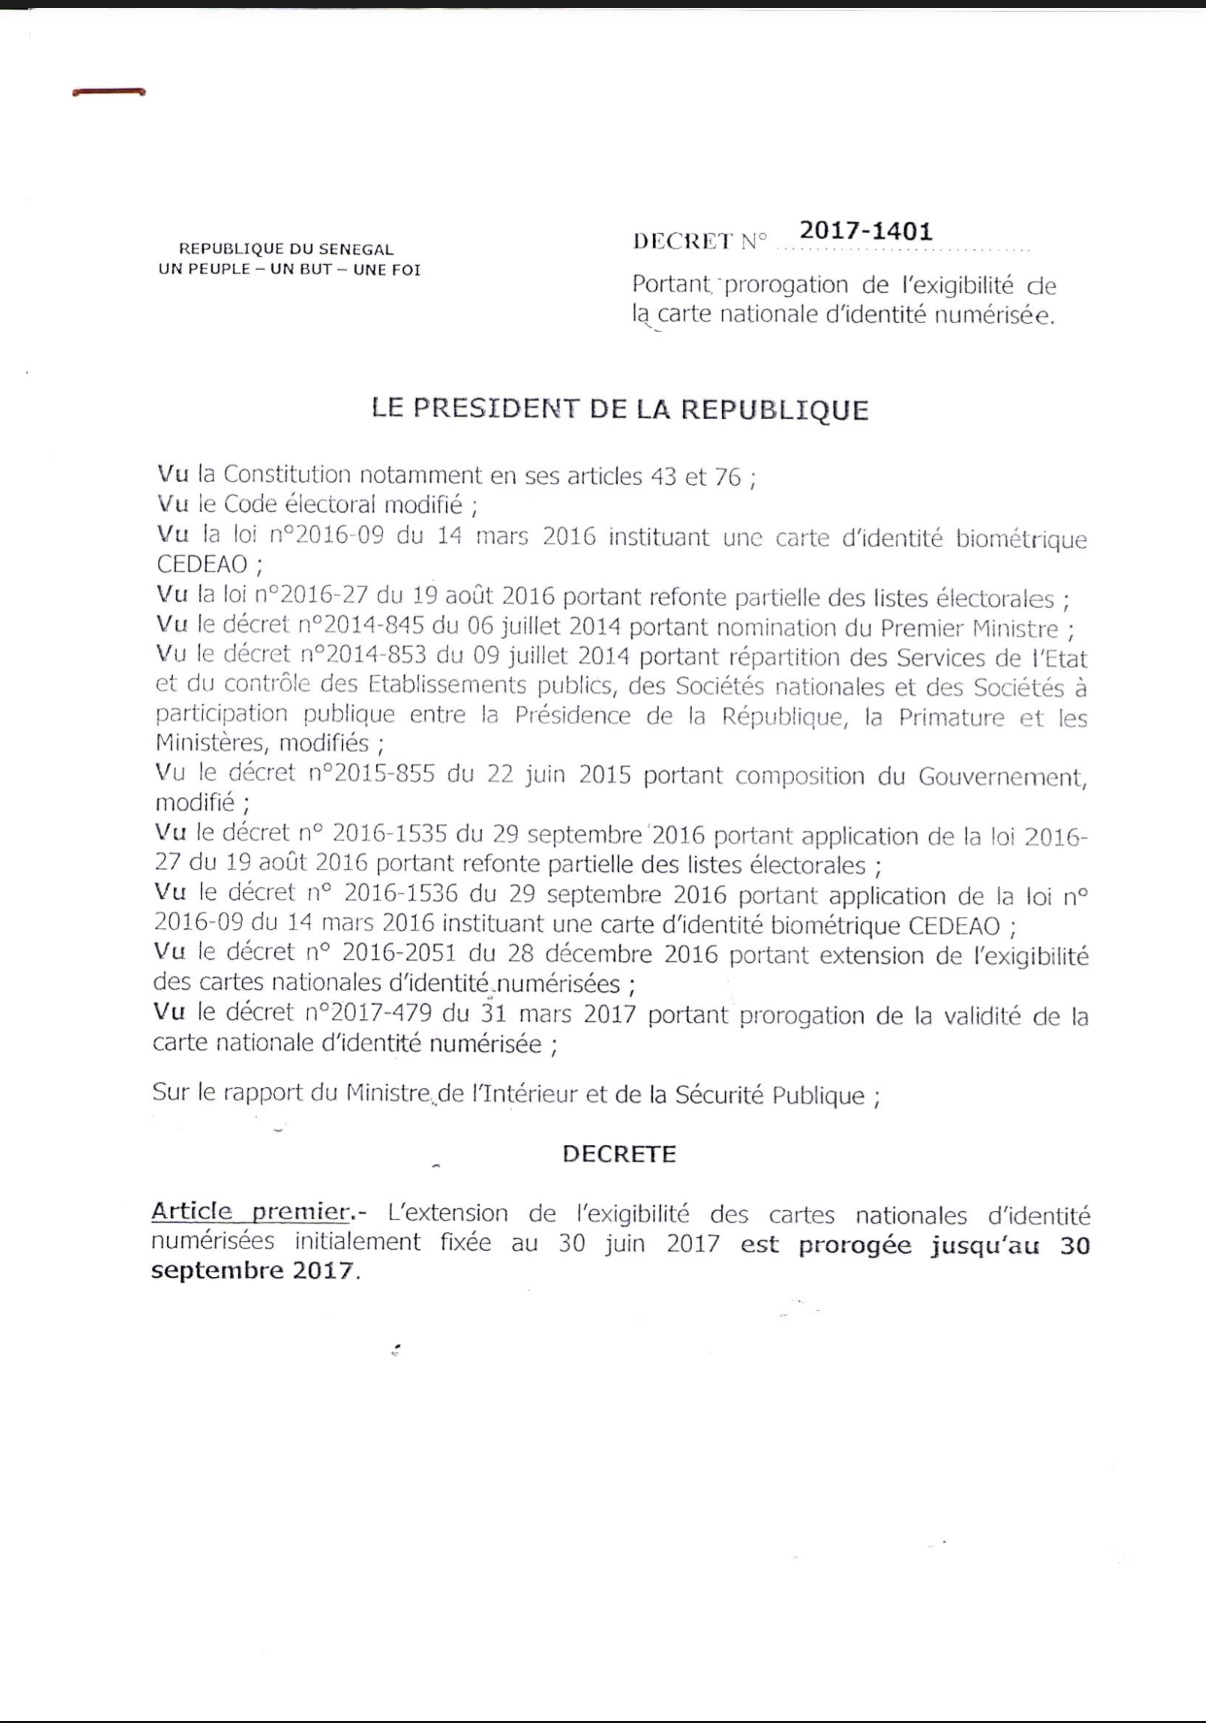 L'extension de l'exigibilité des cartes nationales d'identité prorogée au 30 Septembre 2017 (DOCUMENT)